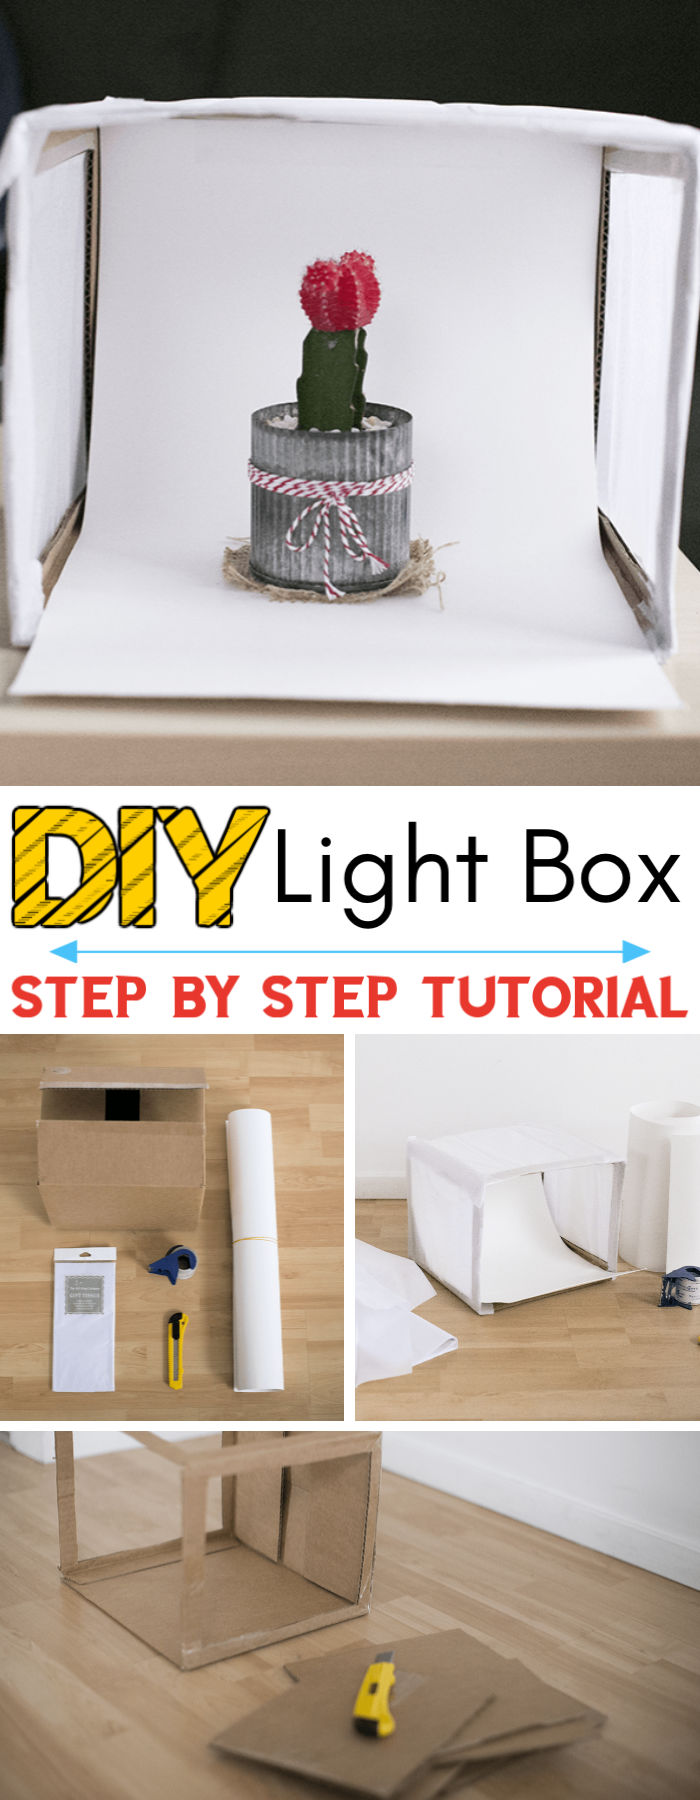 DIY Cardboard Box Photography Light Box